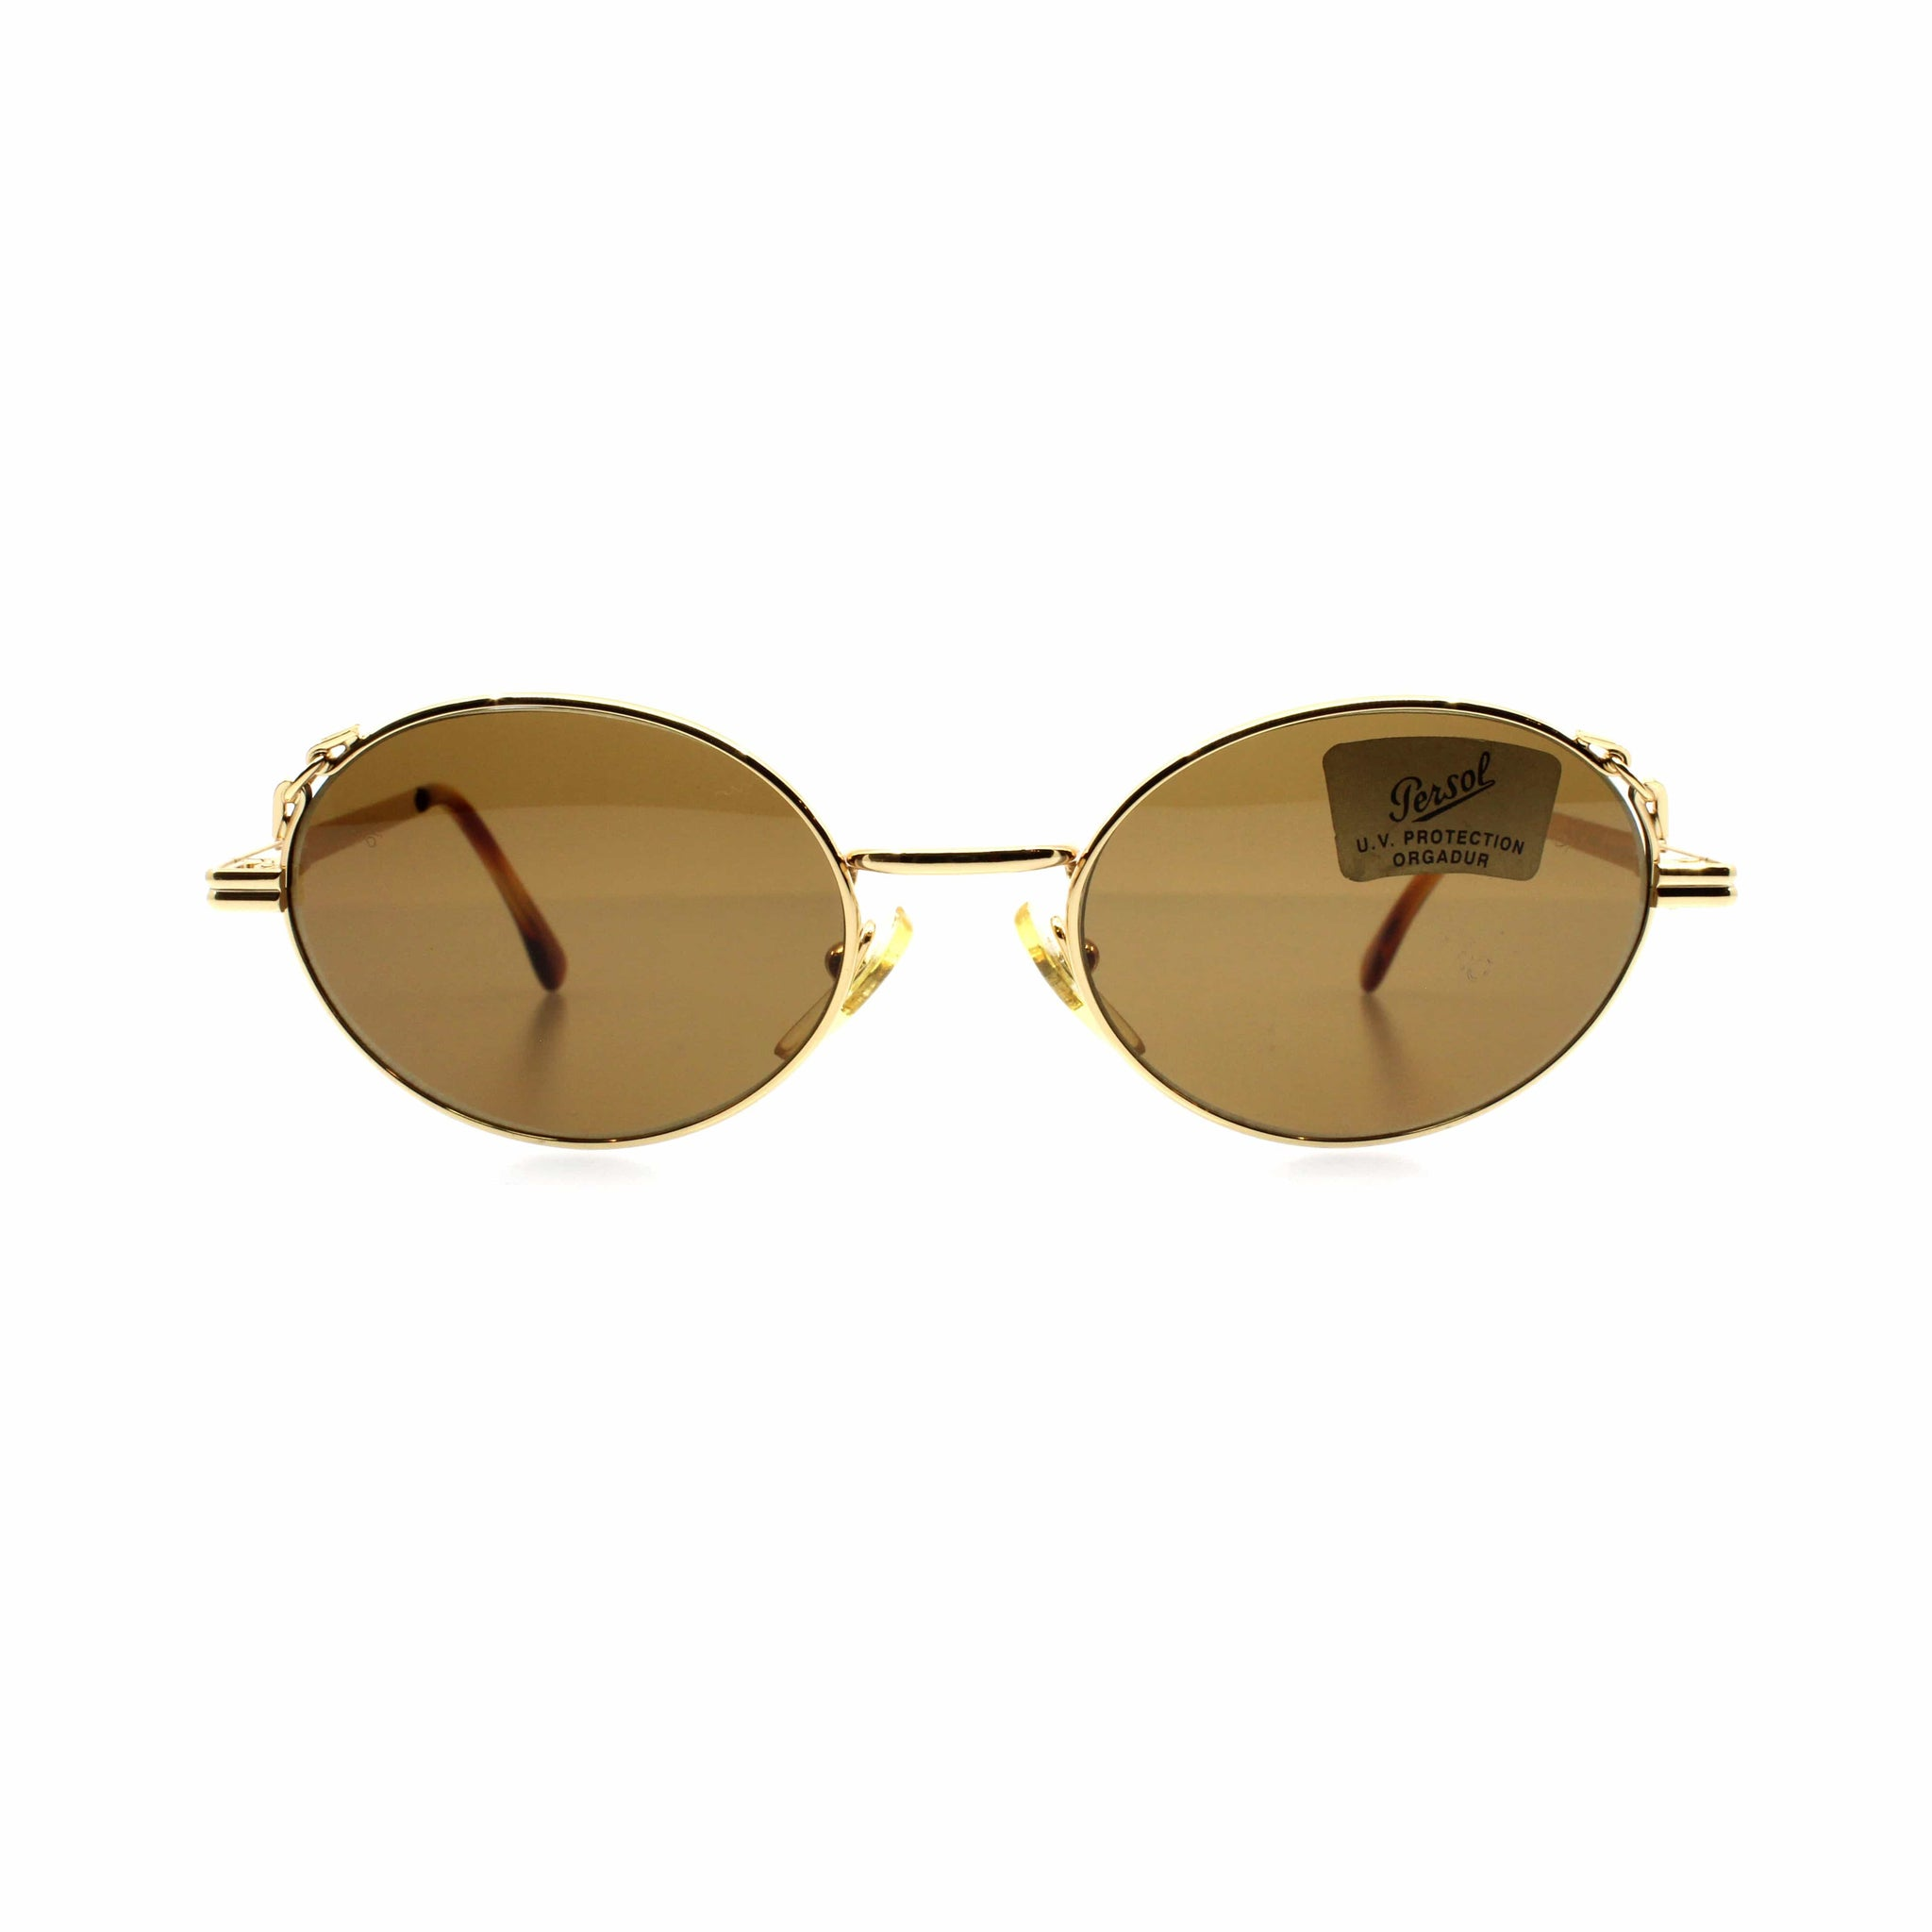 Gold Vintage Moschino MM464 Sunglasses RSTKD Vintage